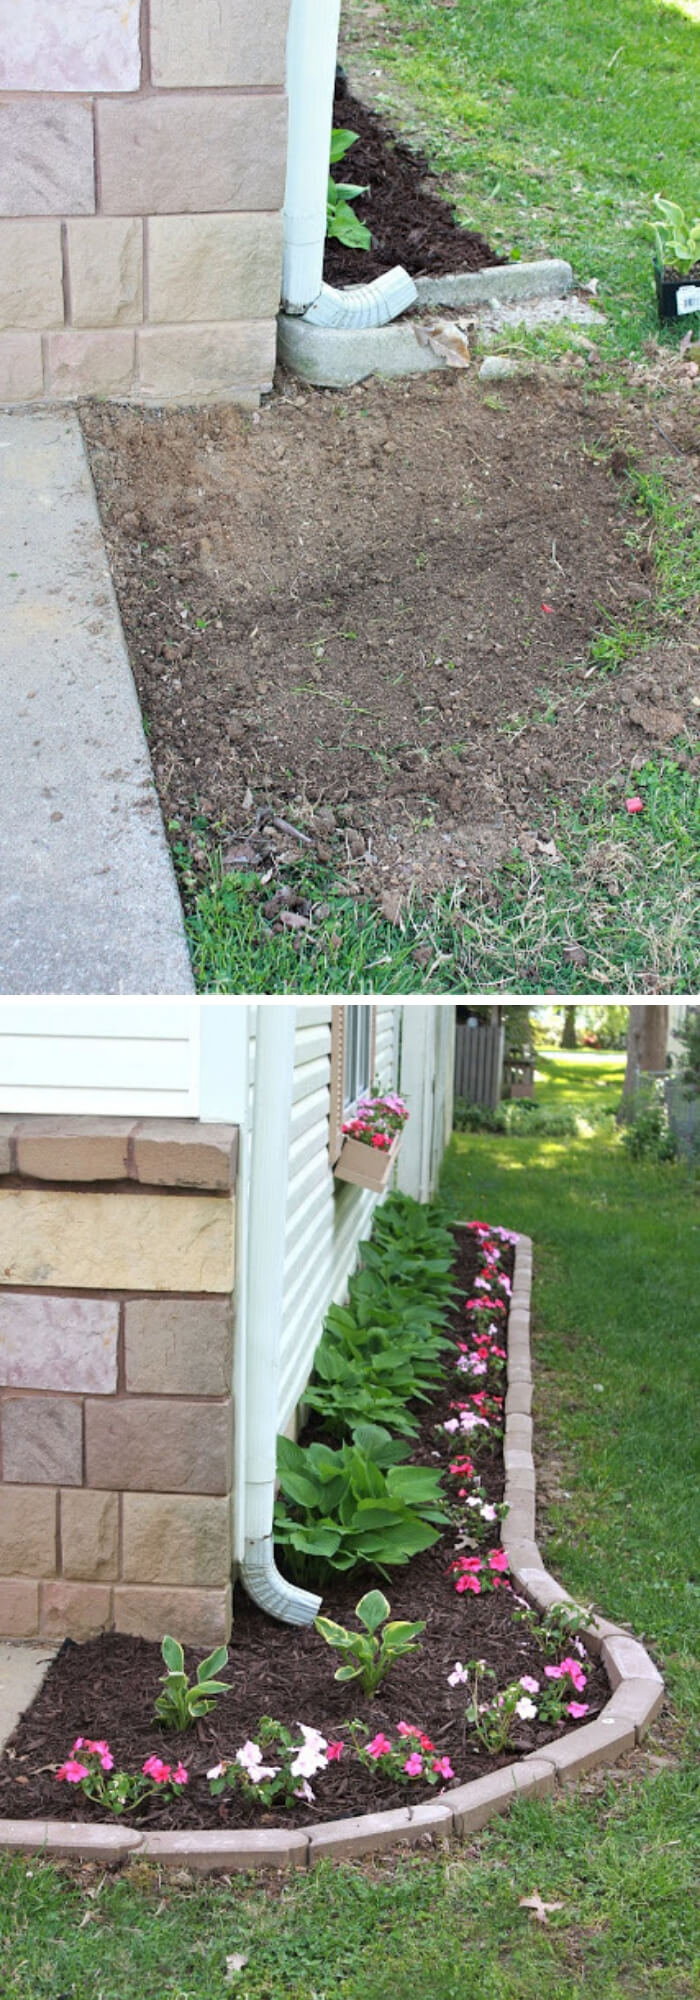 Flower bed under the downspout | Best Downspout landscaping ideas